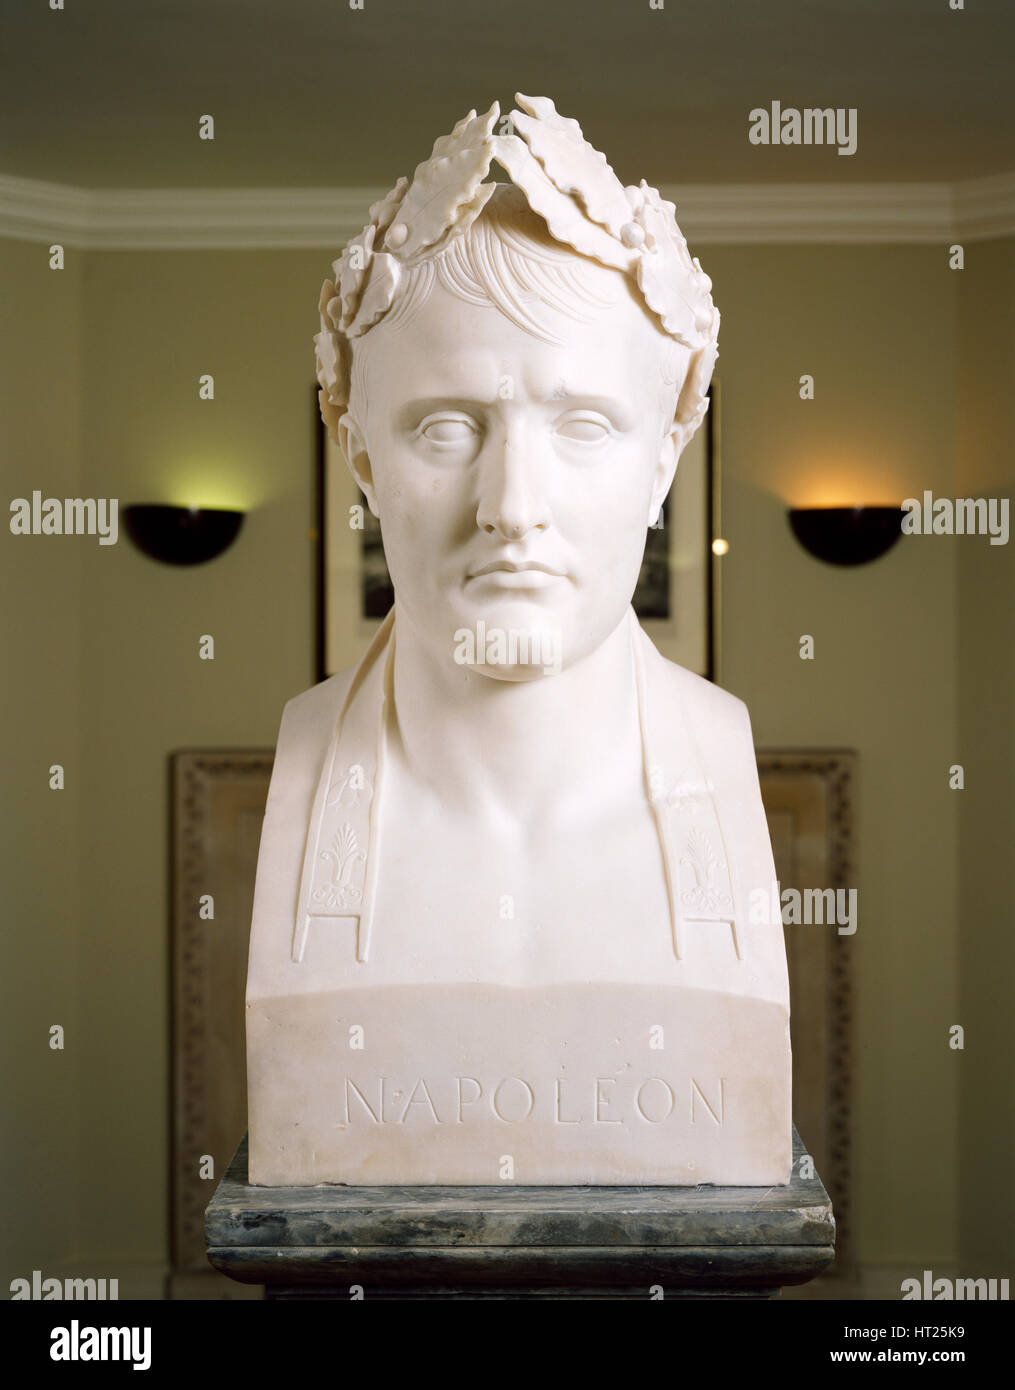 Bust of Napoleon as Emperor of France, c2000s. Artist: Historic England Staff Photographer. - Stock Image